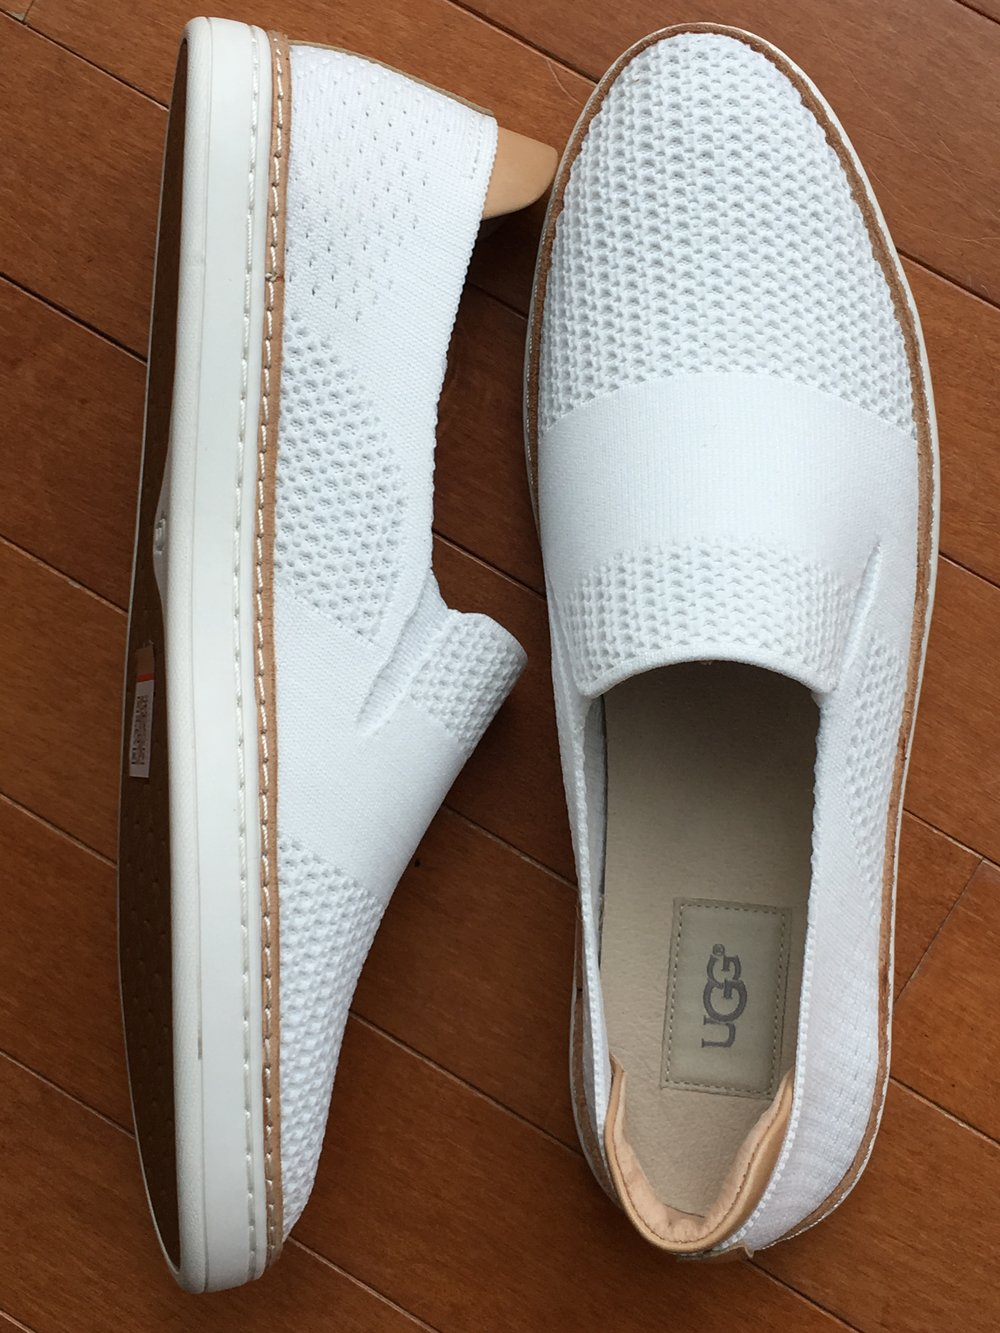 Ugg pull-on sneakers